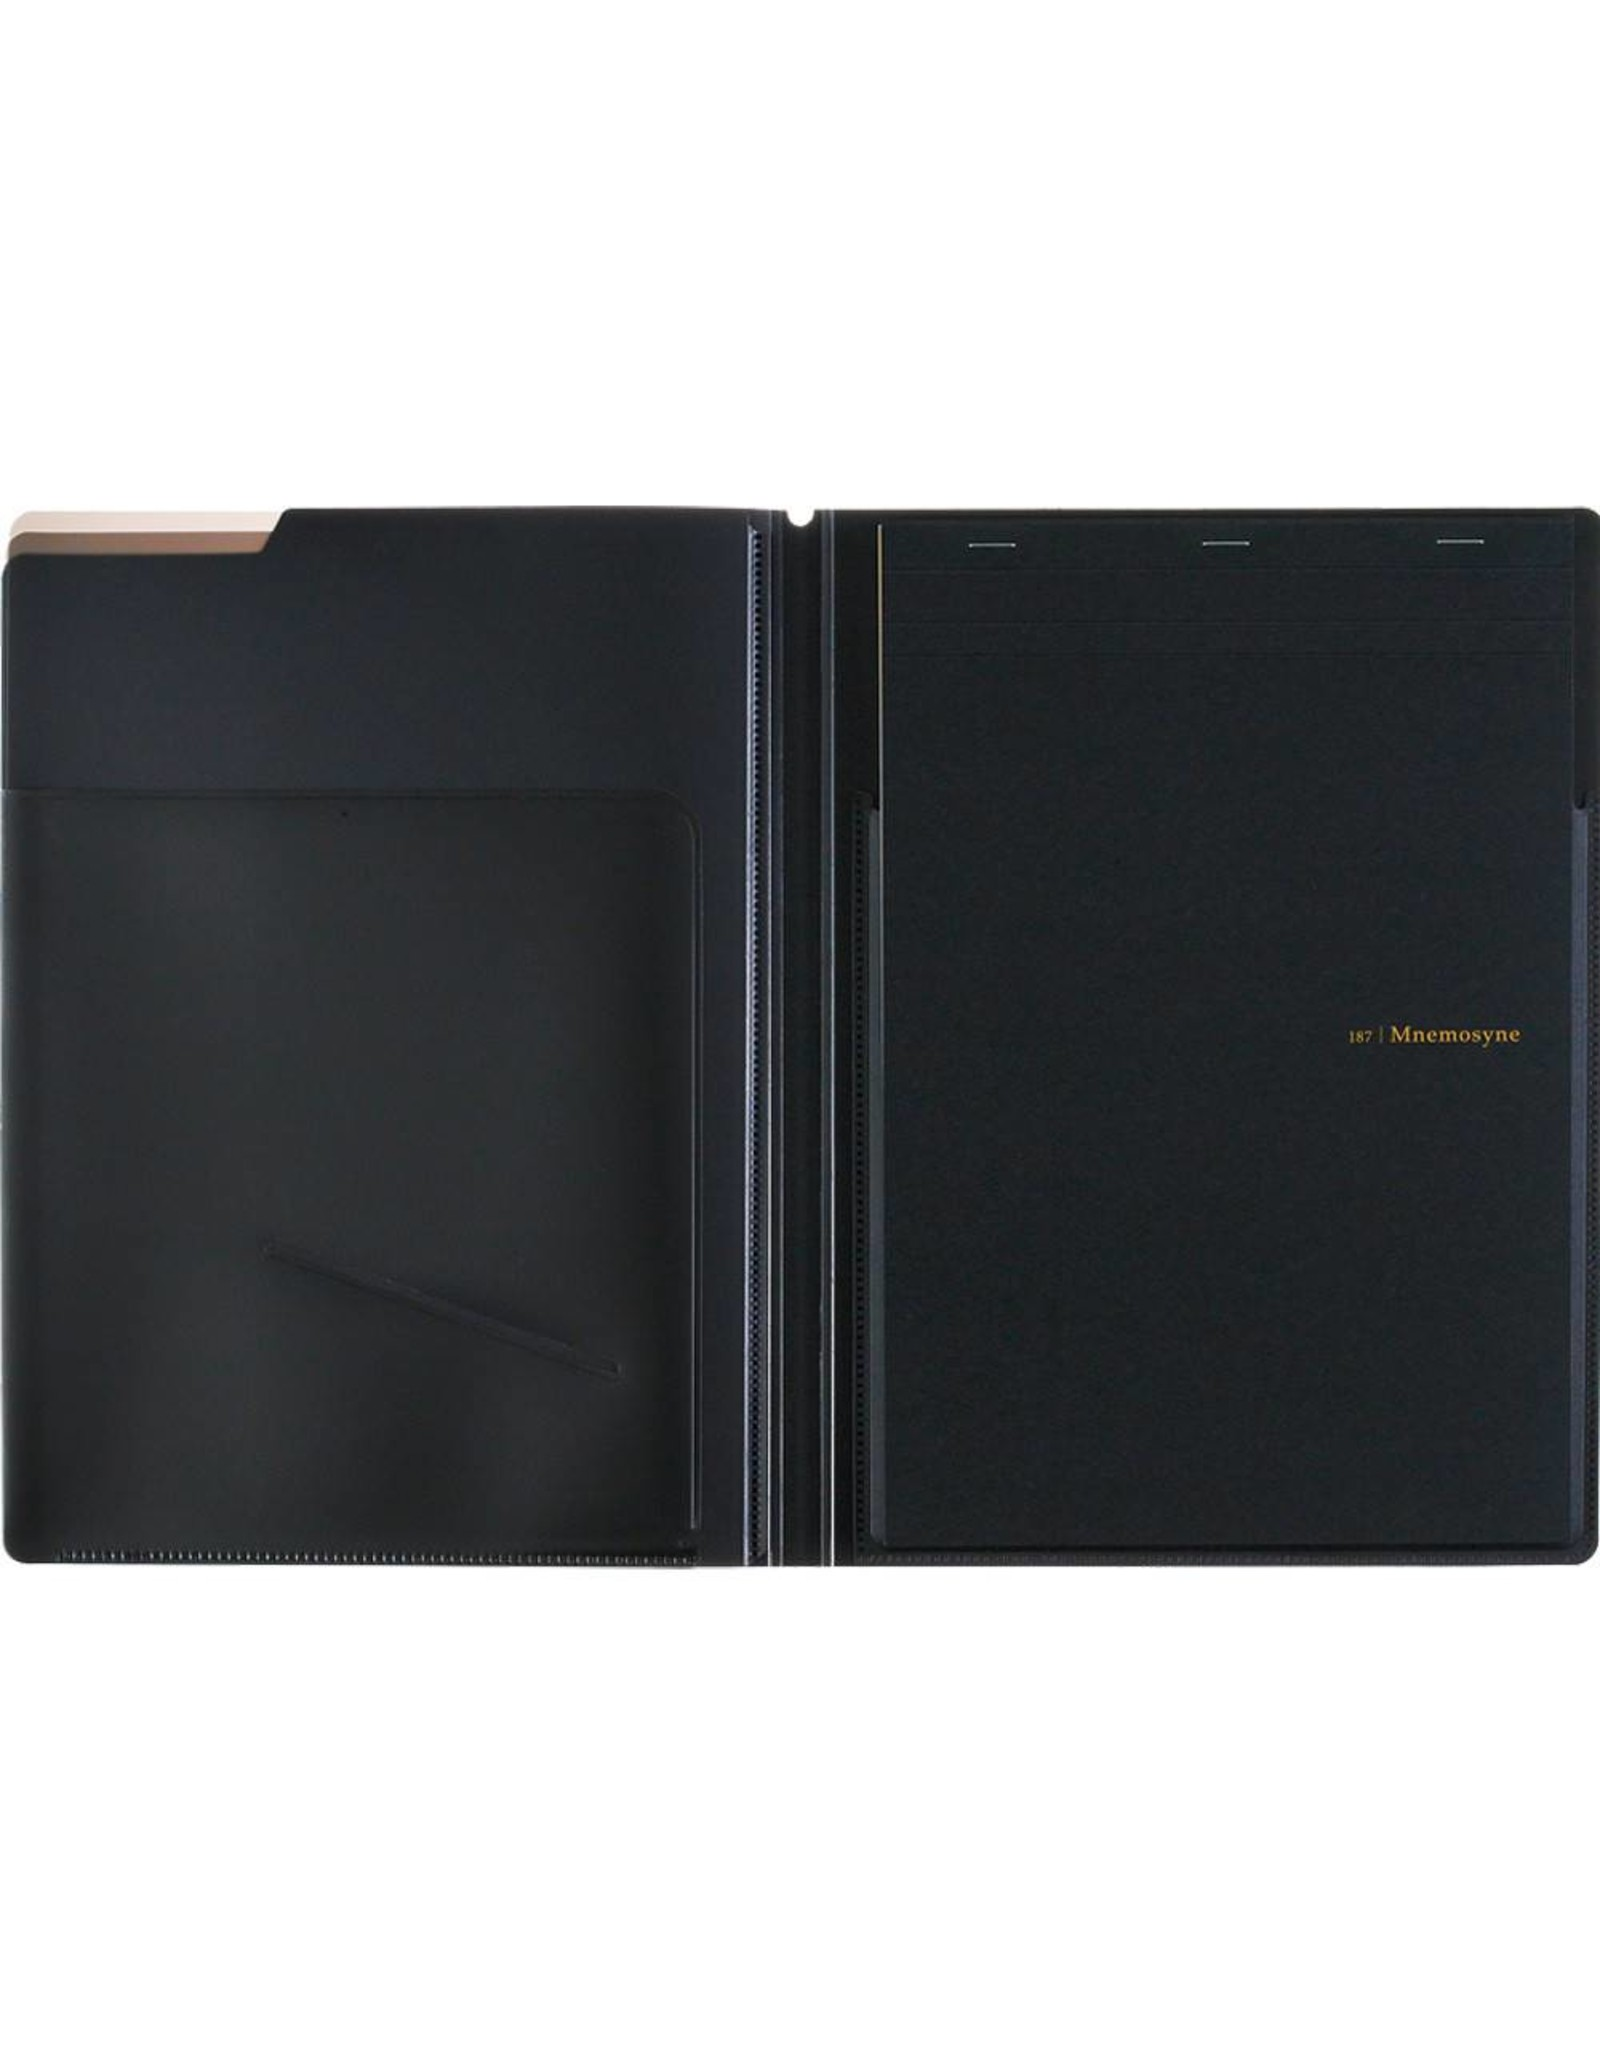 MARUMAN MNEMOSYNE NOTEPAD AND HOLDER WITH 5 POCKETS A4